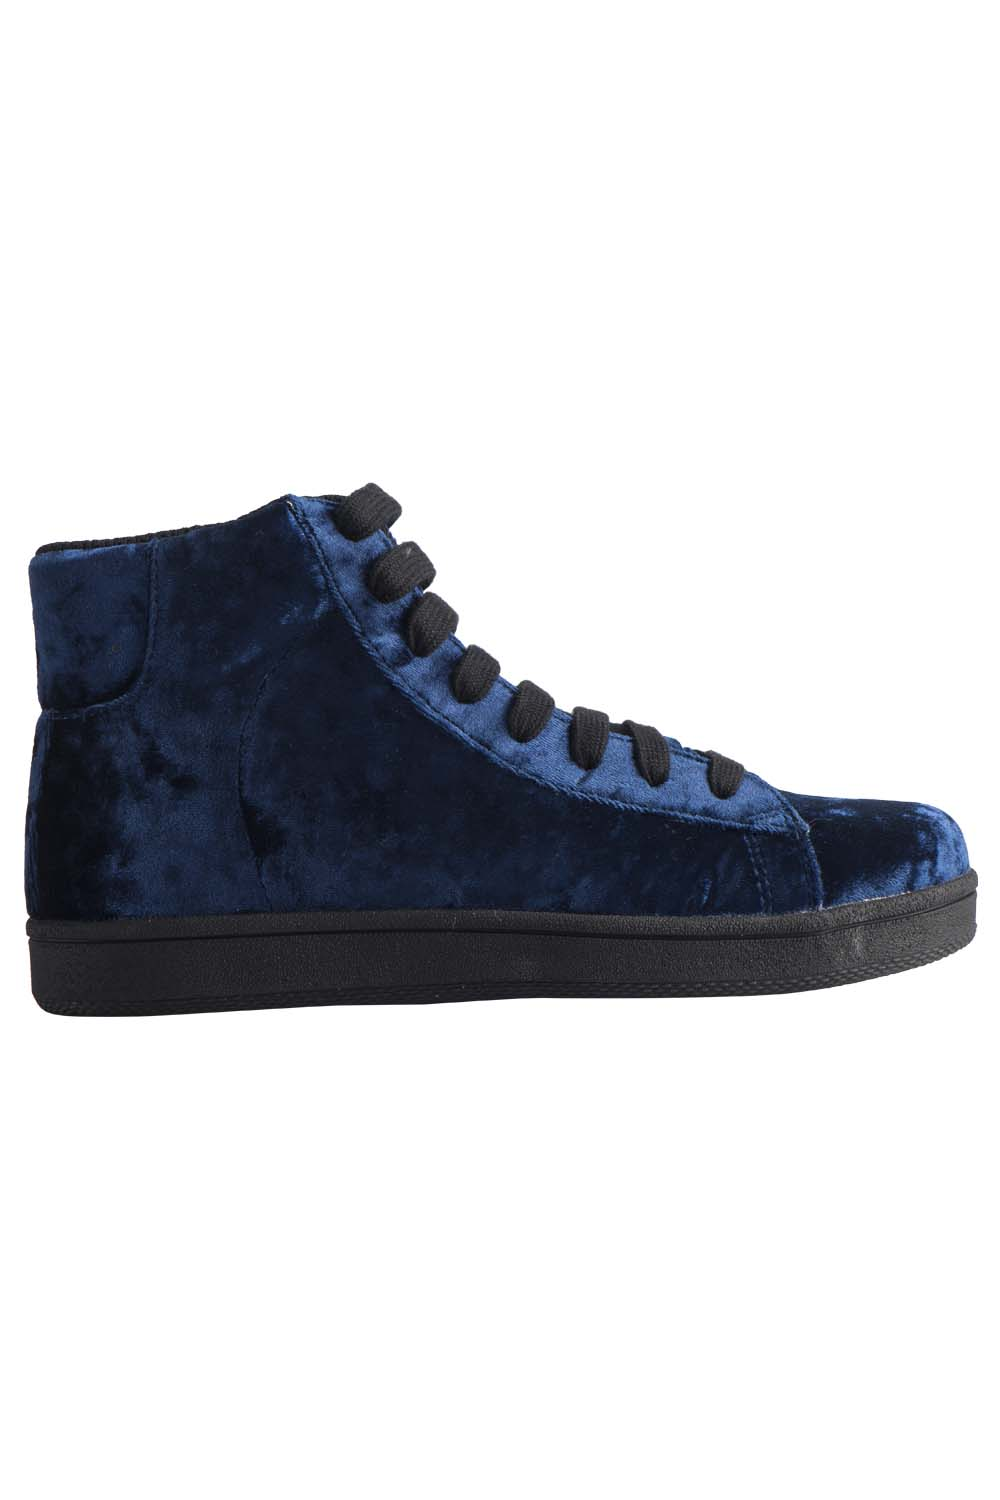 JEFFREY CAMPBELL SNEAKERS - STAN SMITH BLUE.jpg